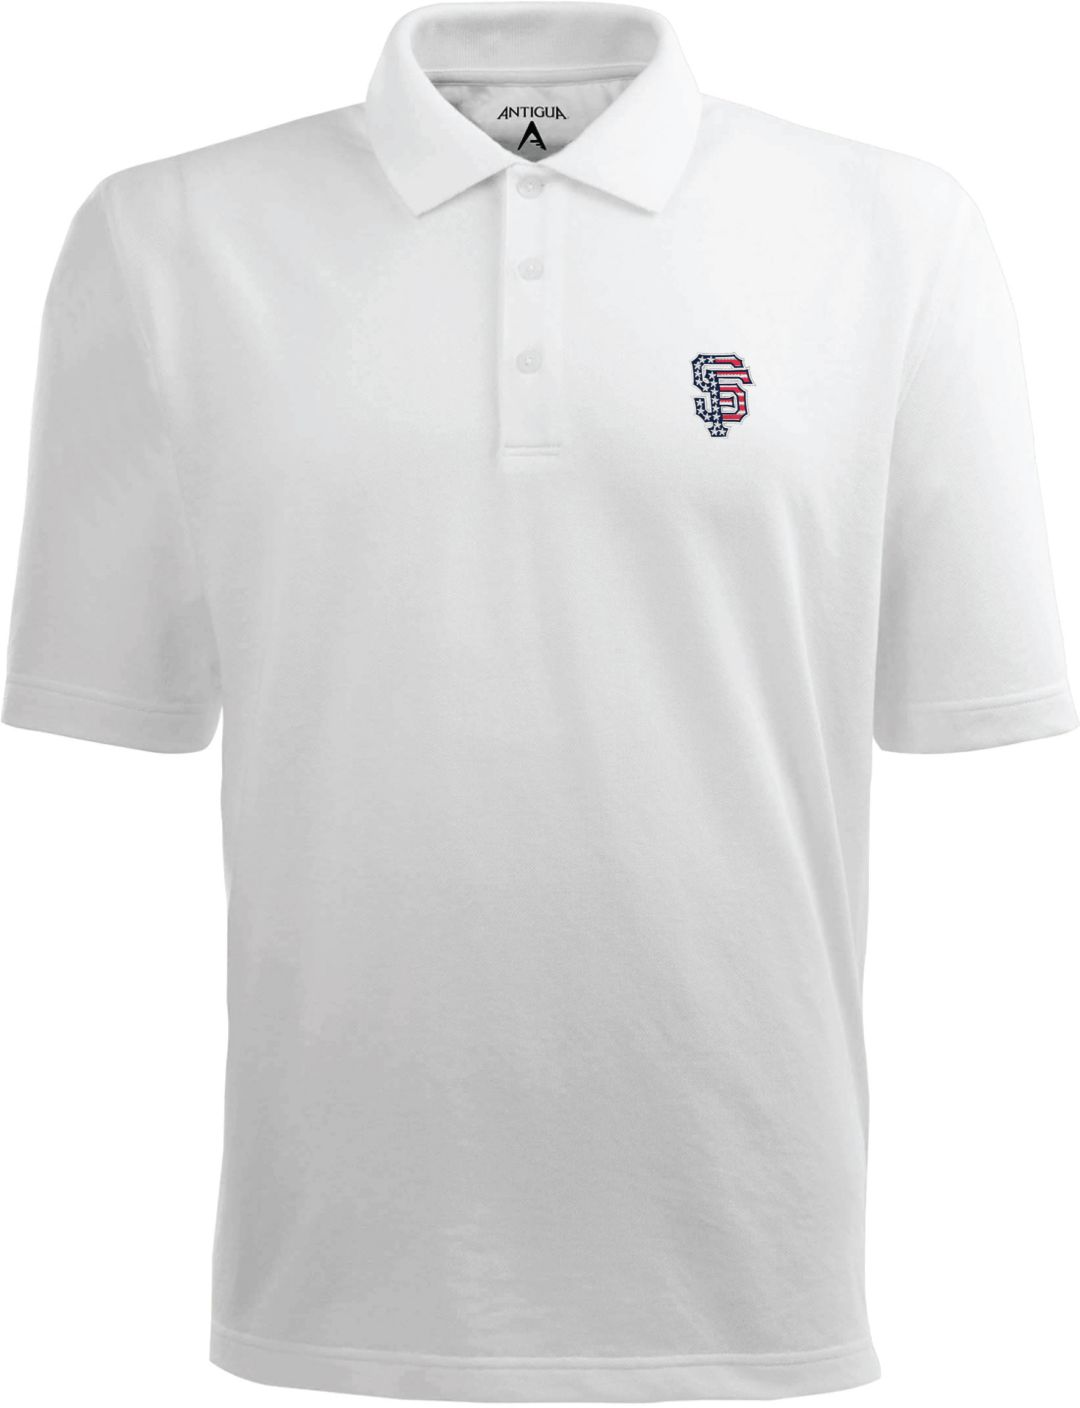 313dae90 Antigua Men's San Francisco Giants Xtra-Lite Patriotic Logo White Pique  Performance Polo. noImageFound. Previous